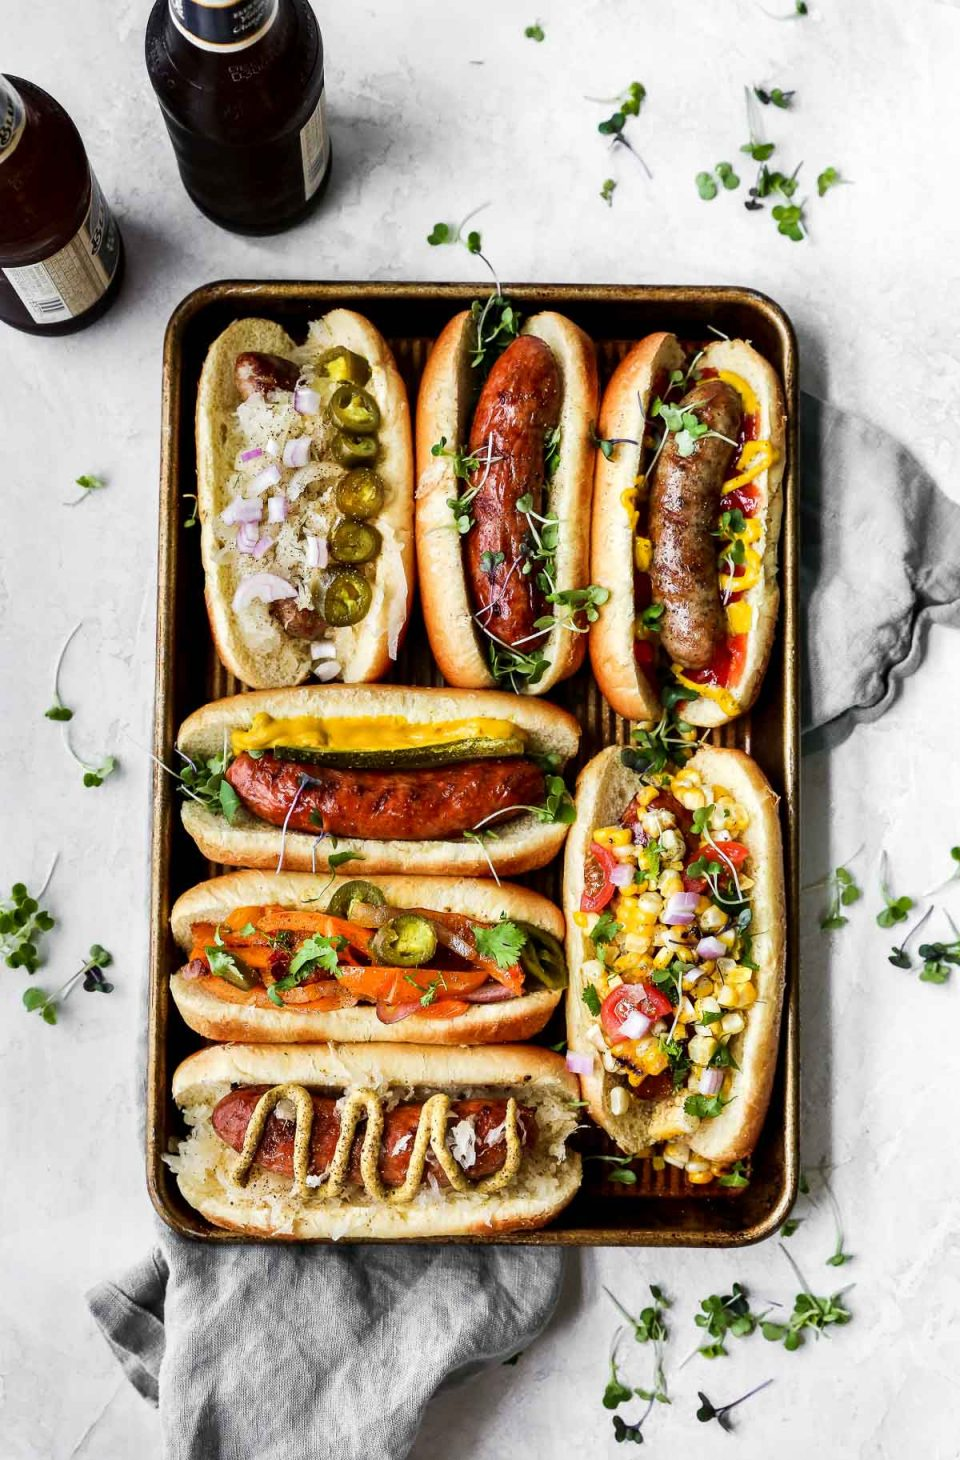 All kinds of grilled sausage on a small baking sheet! The sausages are served on buns with a variety of toppings (mustard, pickled veggies, etc.). The baking sheet is on a grey surface with a grey linen napkin, next to a few bottles of beer.